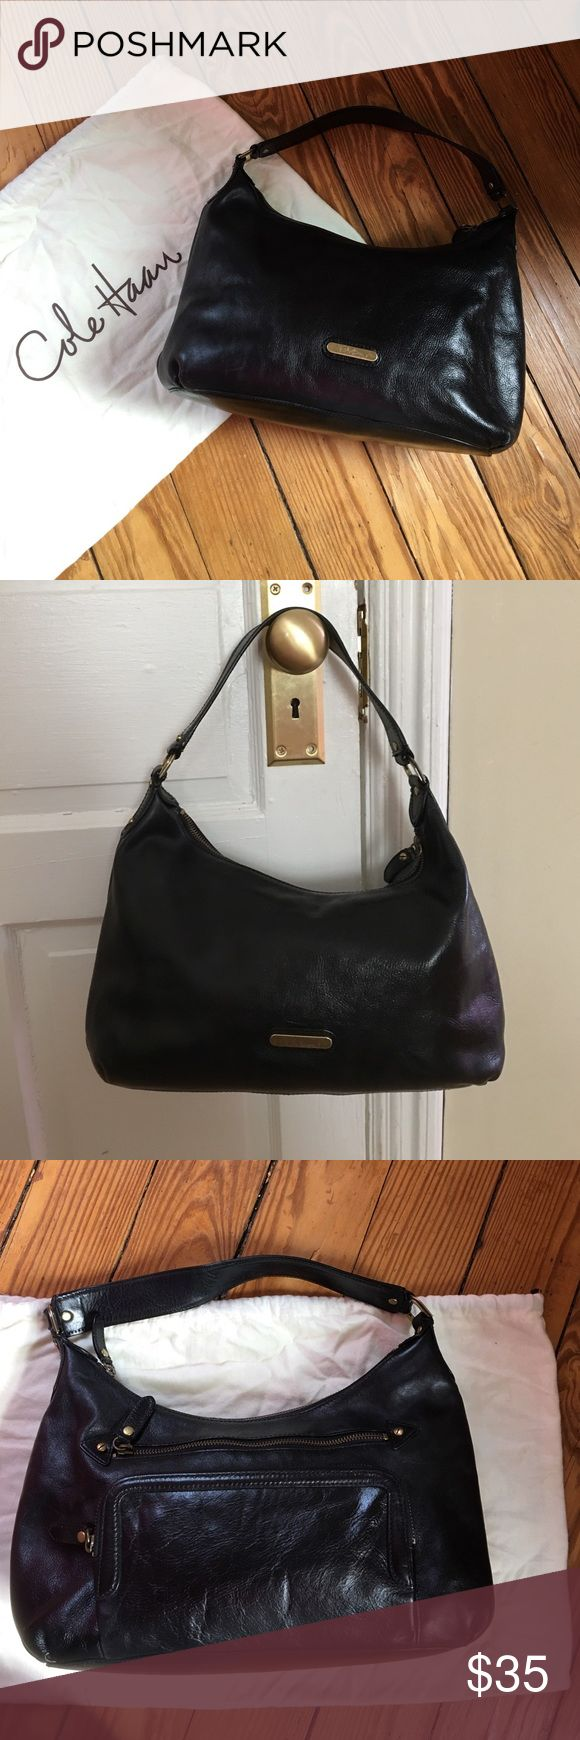 Cole Haan Black Leather Bag Purse Black leather bag with brass accents by Cole Haan. Measures 9 x 13 inches. Brass logo plate has some tarnish, but that only adds to the vintagey look of the bag. Minor wear on bottom/corners, but overall very good condition. Comes with dust bag. Cole Haan Bags Shoulder Bags